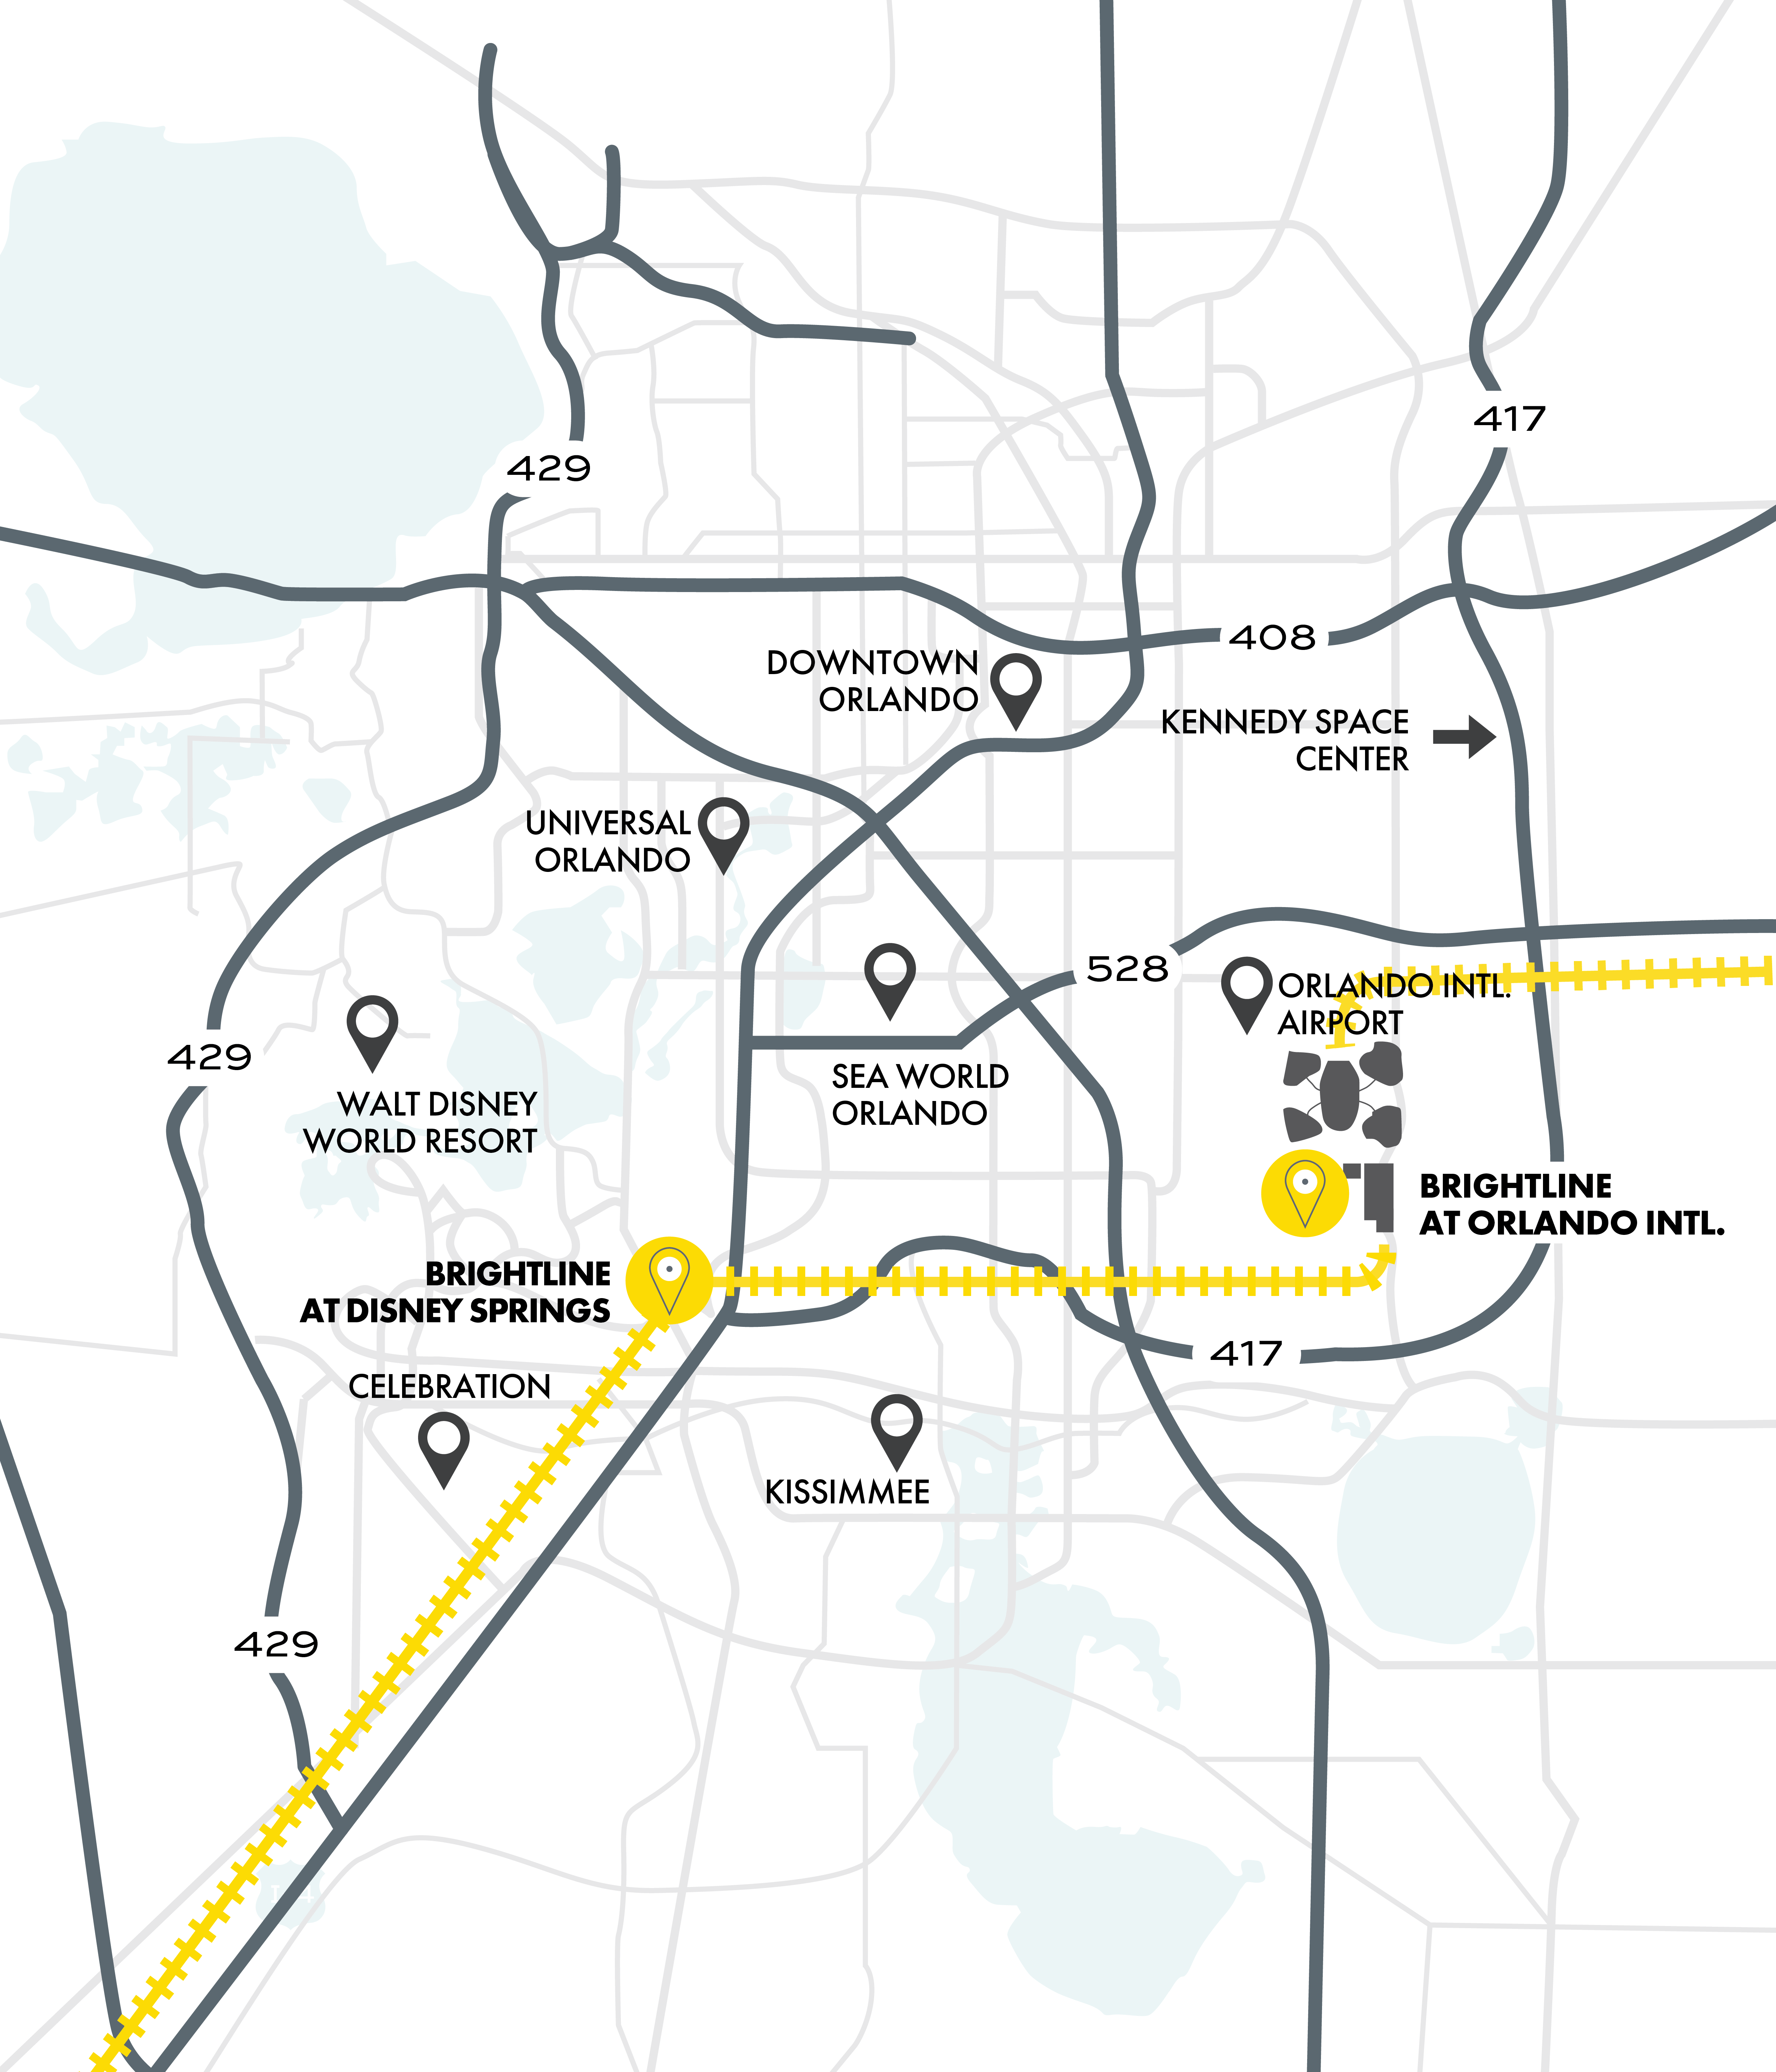 Orlando service map with nearby attractions.